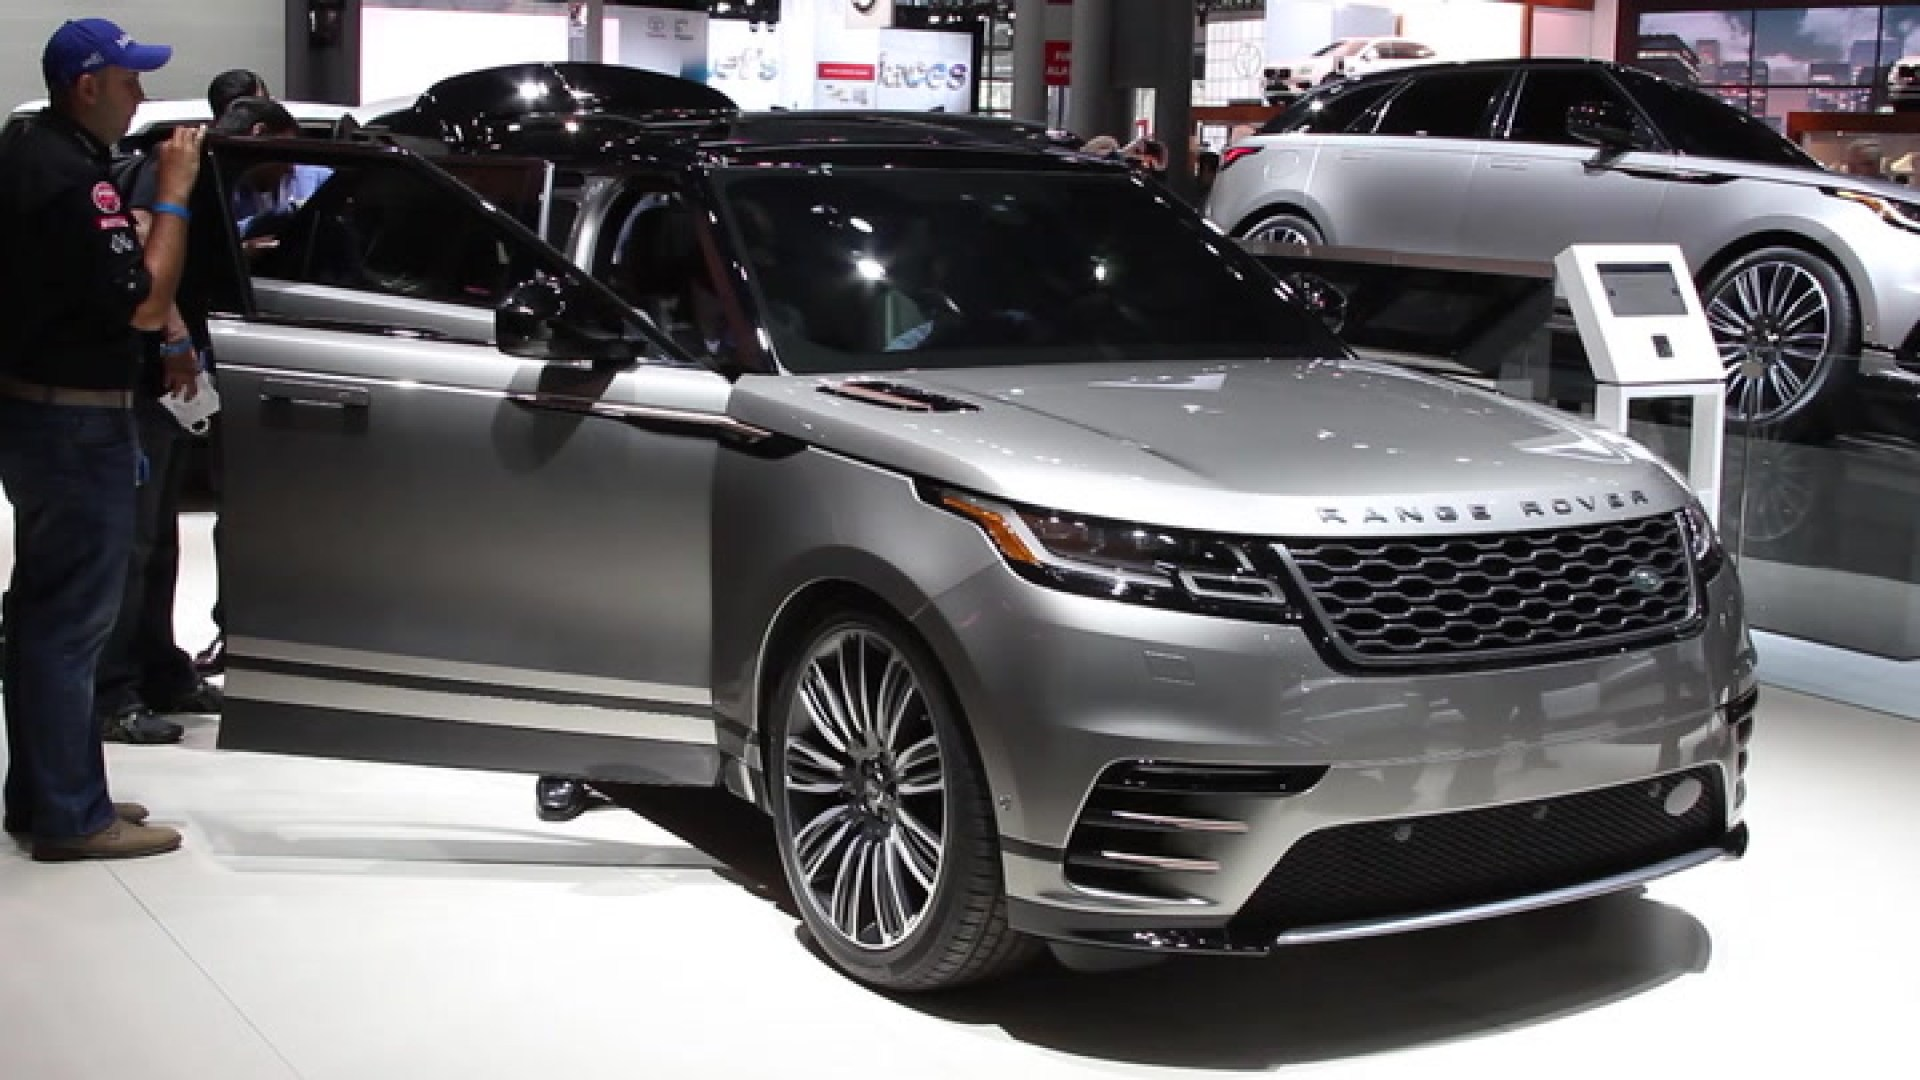 The all new Range Rover Velar dials up Land Rover s design and